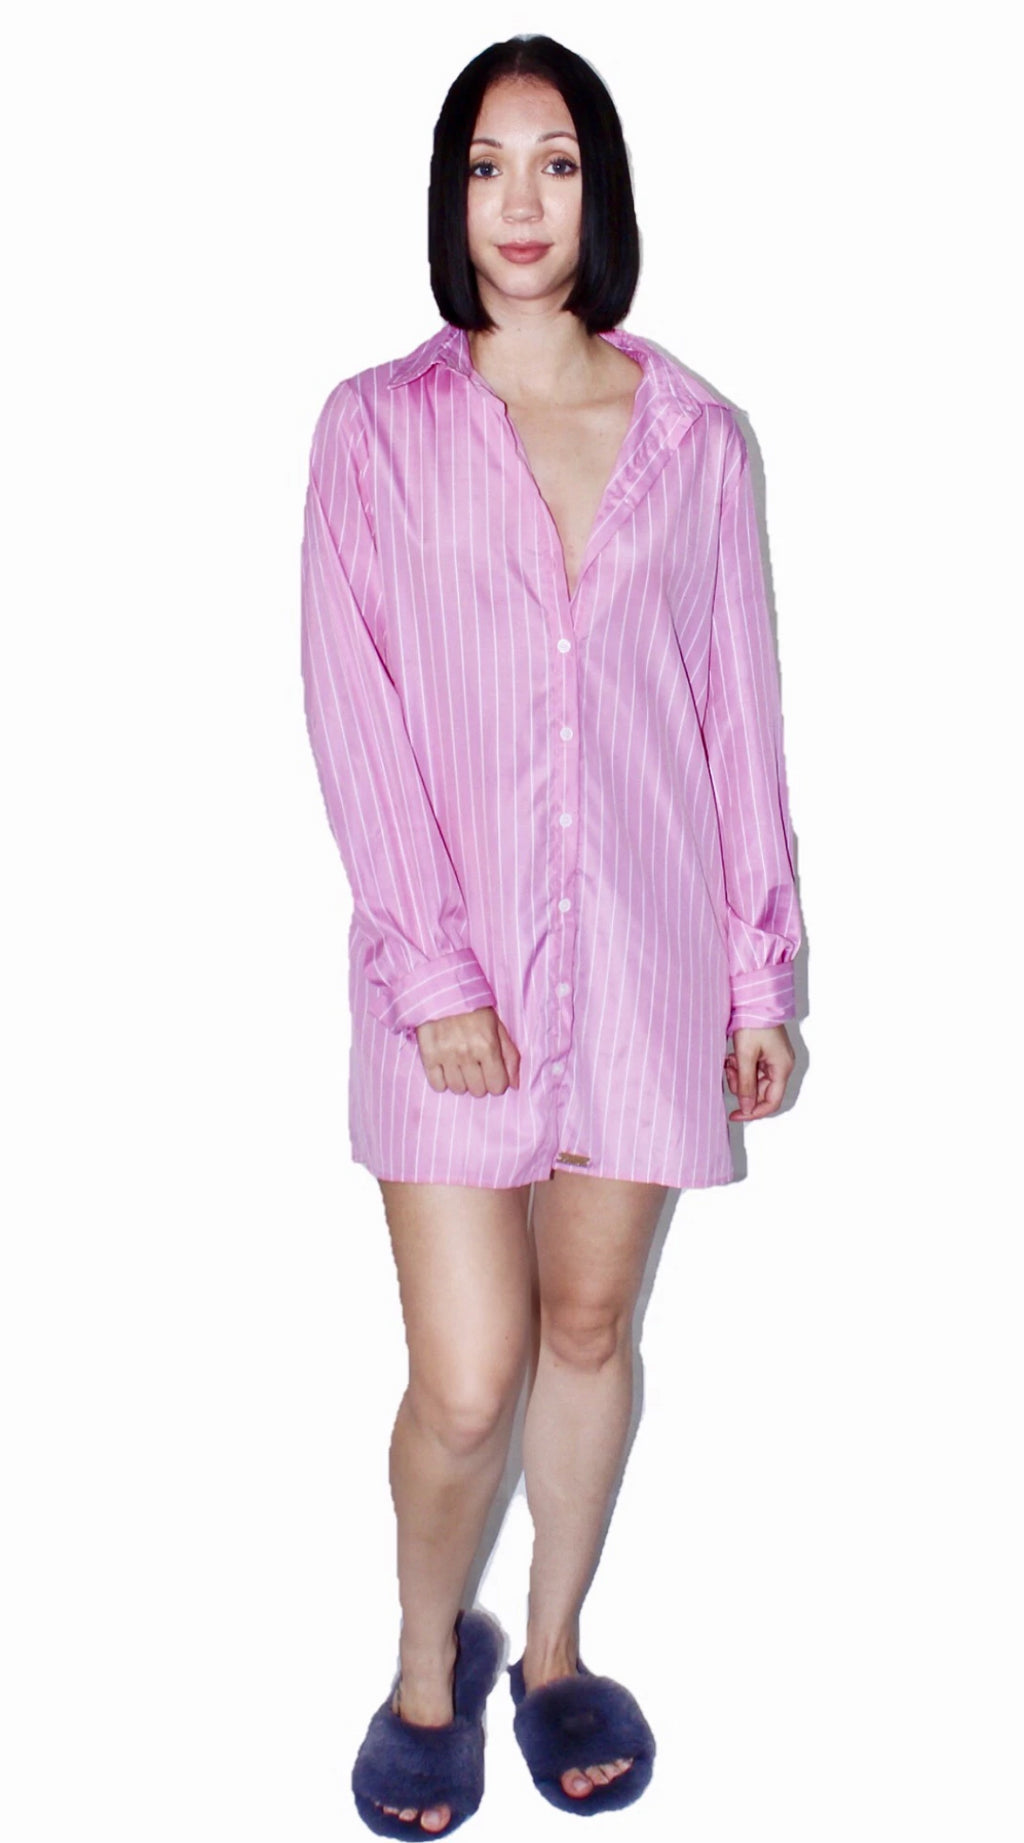 Ryan Oversized Striped Button Down Shirt